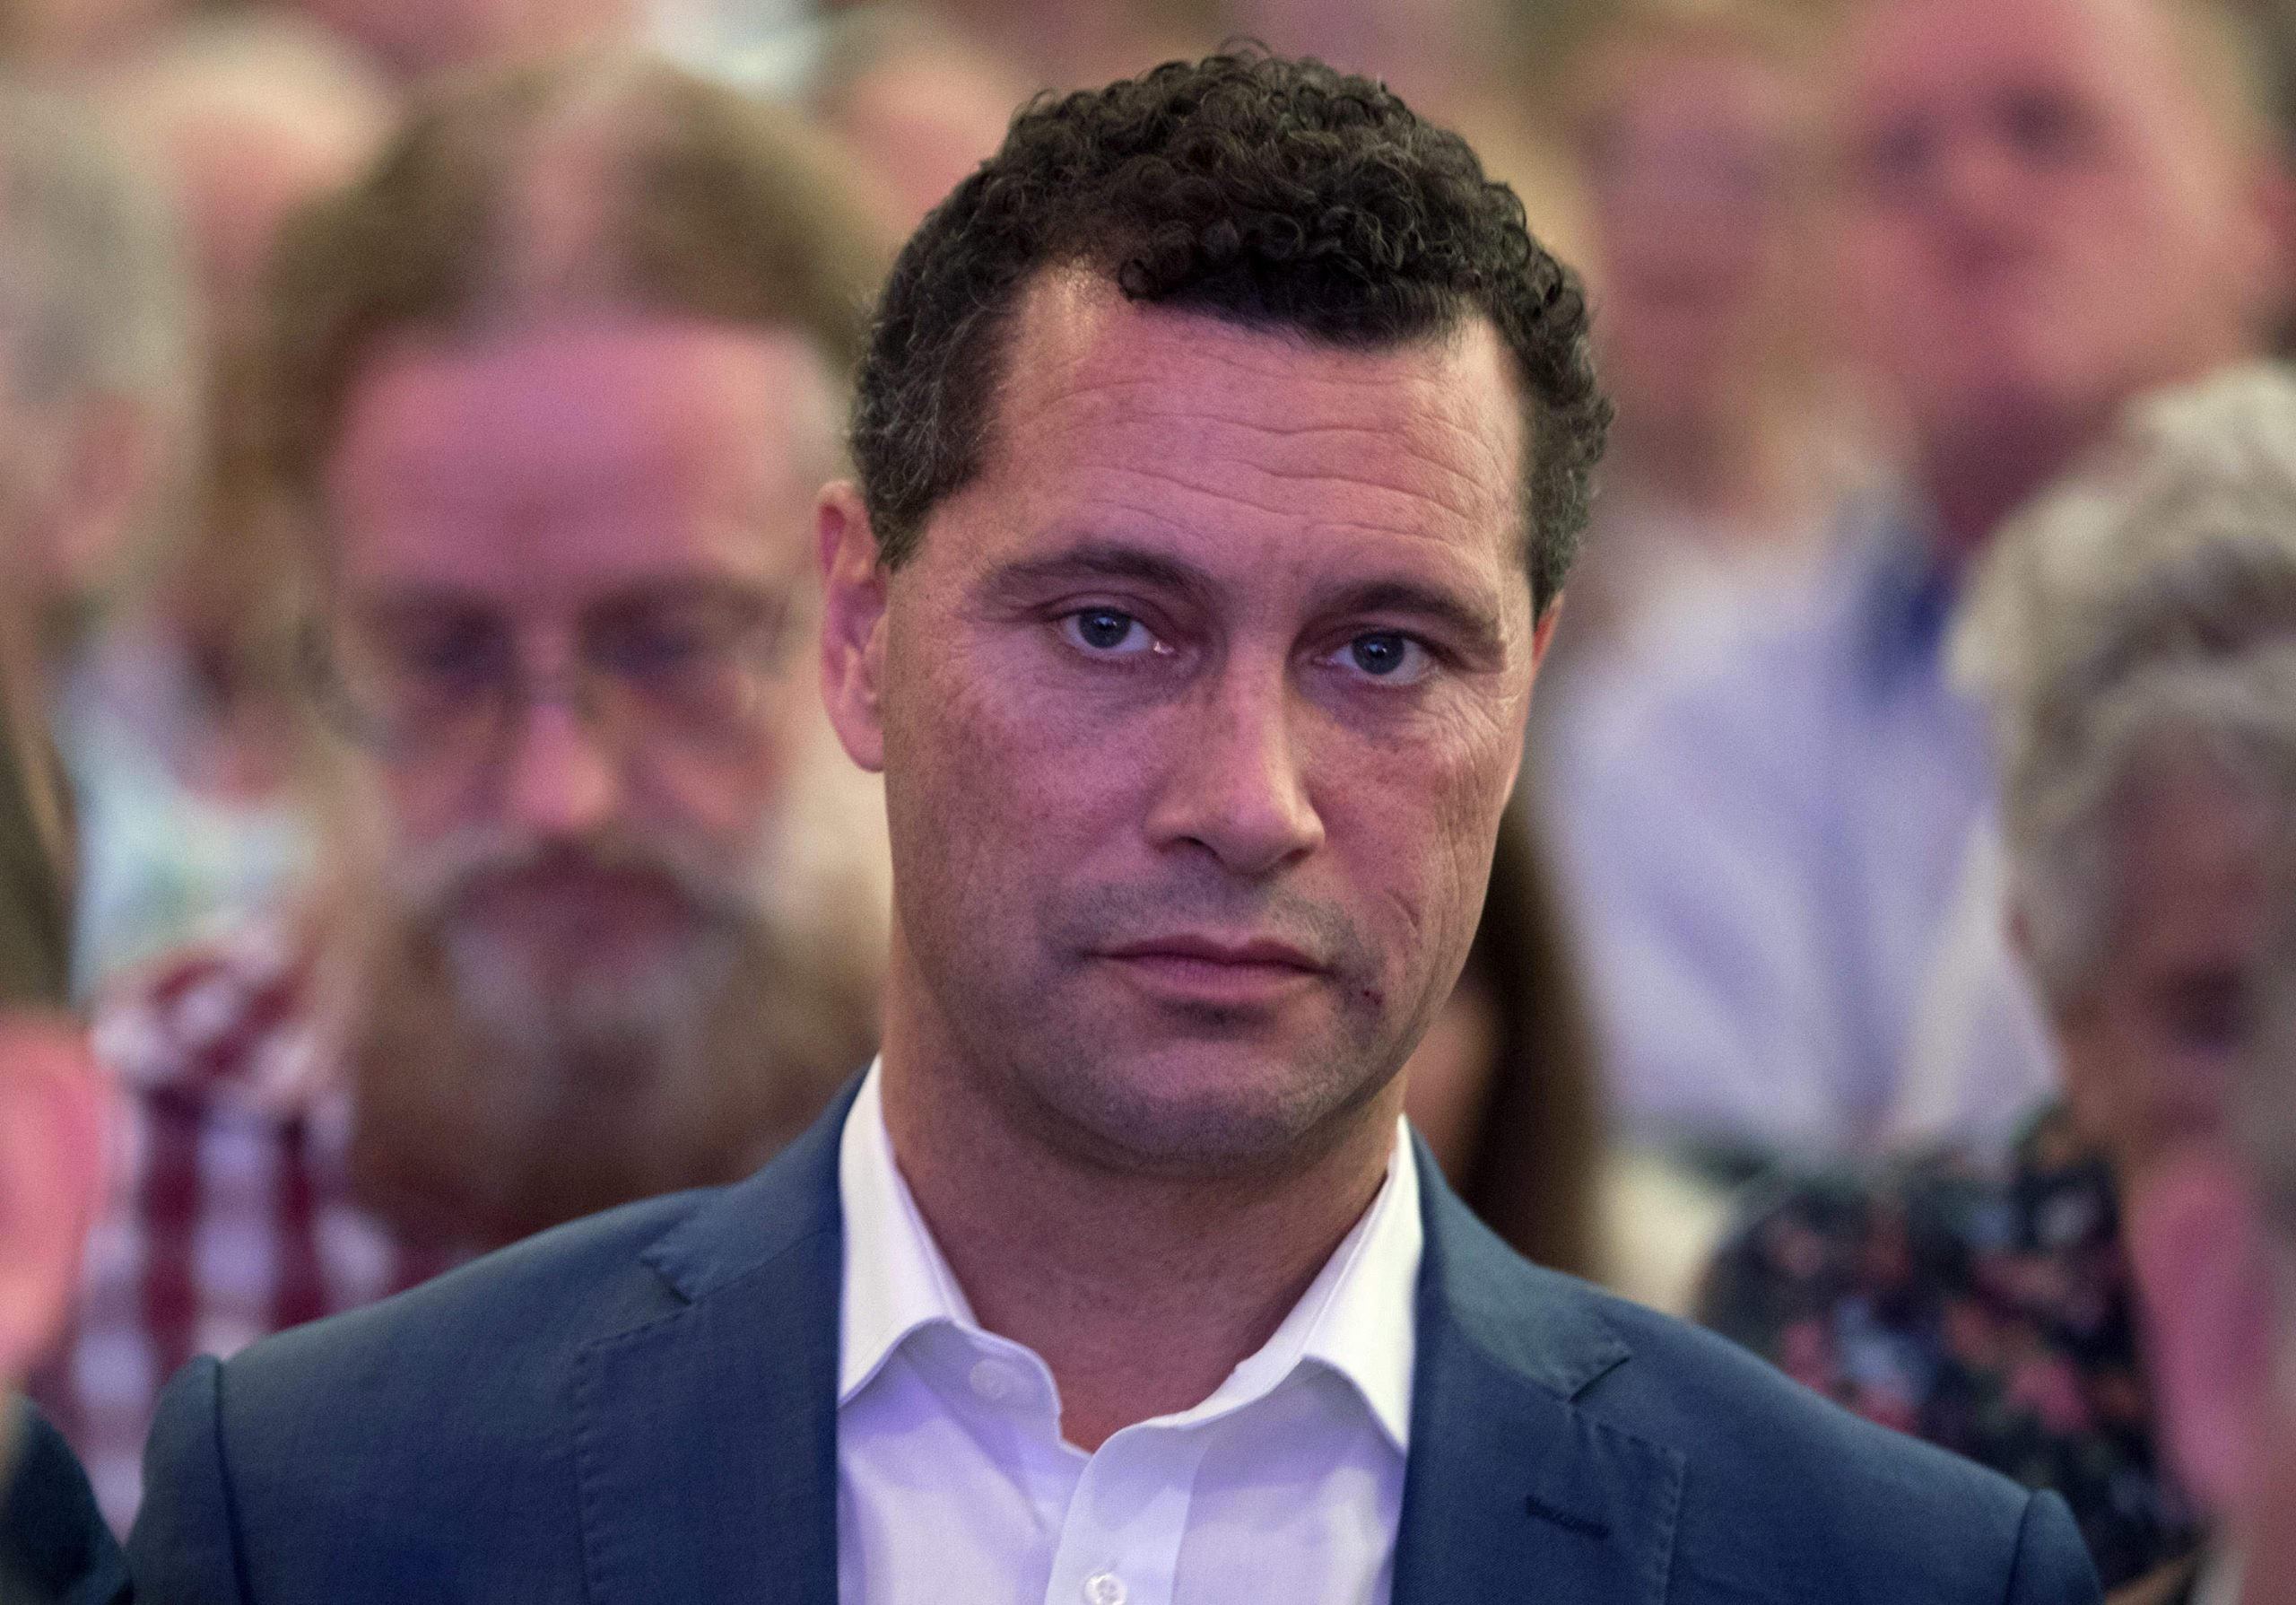 Steven Woolfe's collapse just proves to Brussels that Ukip are Brits abroad